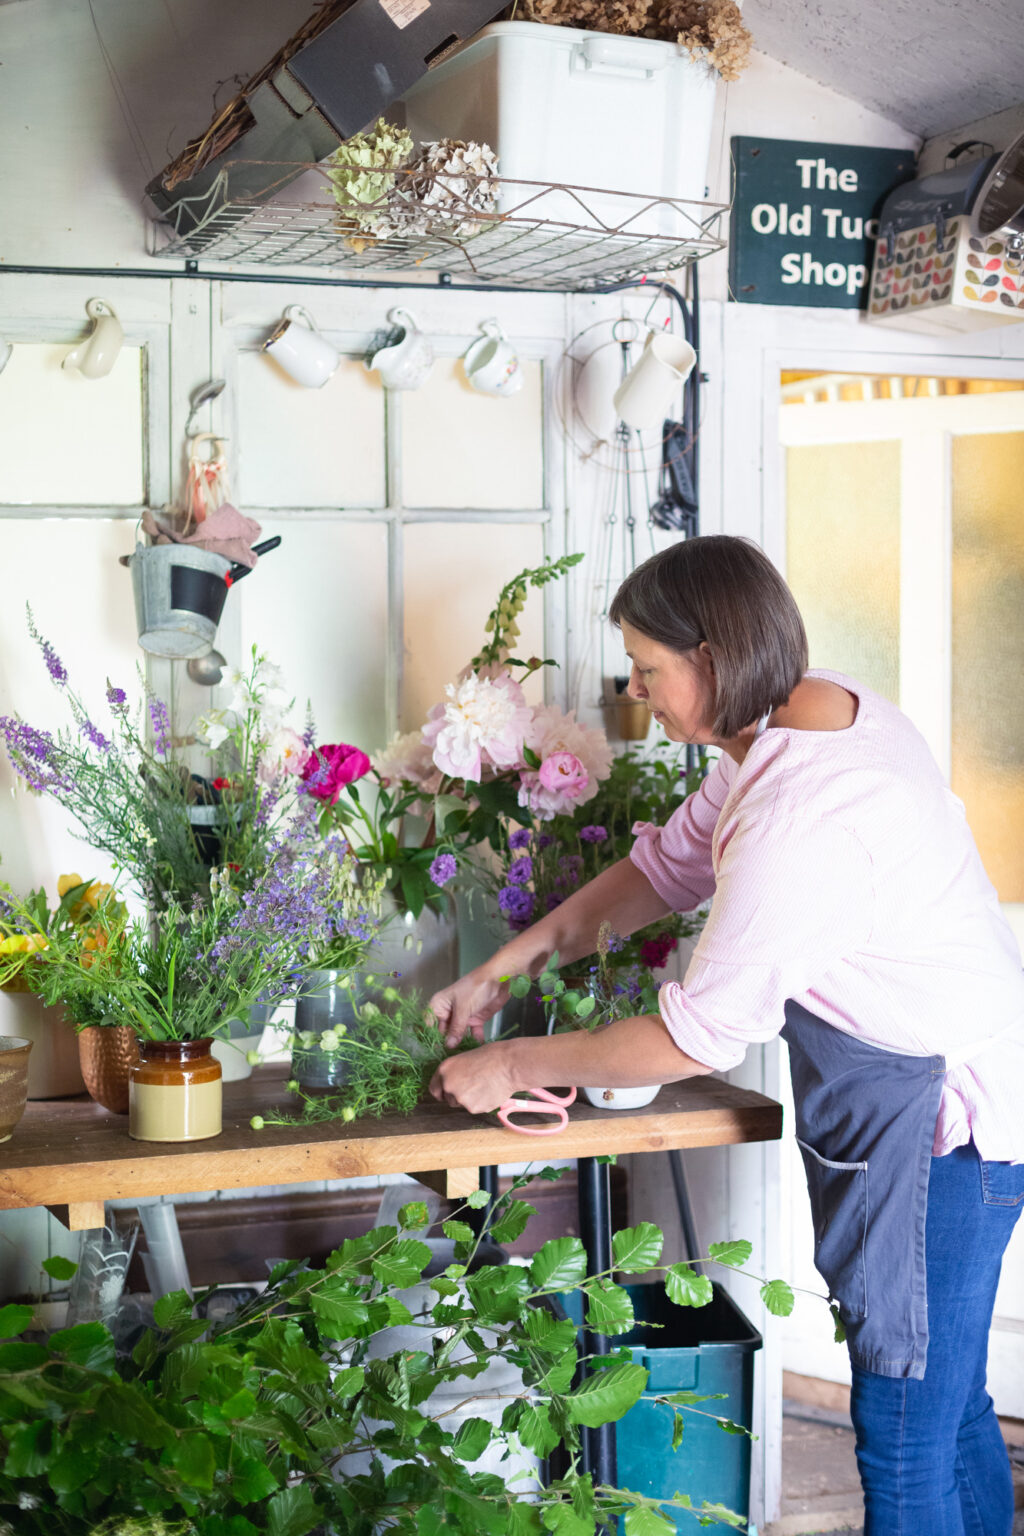 Carole of Tuckshop Flowers works from home in her garden workshop, making flowers for events, weddings and funerals.